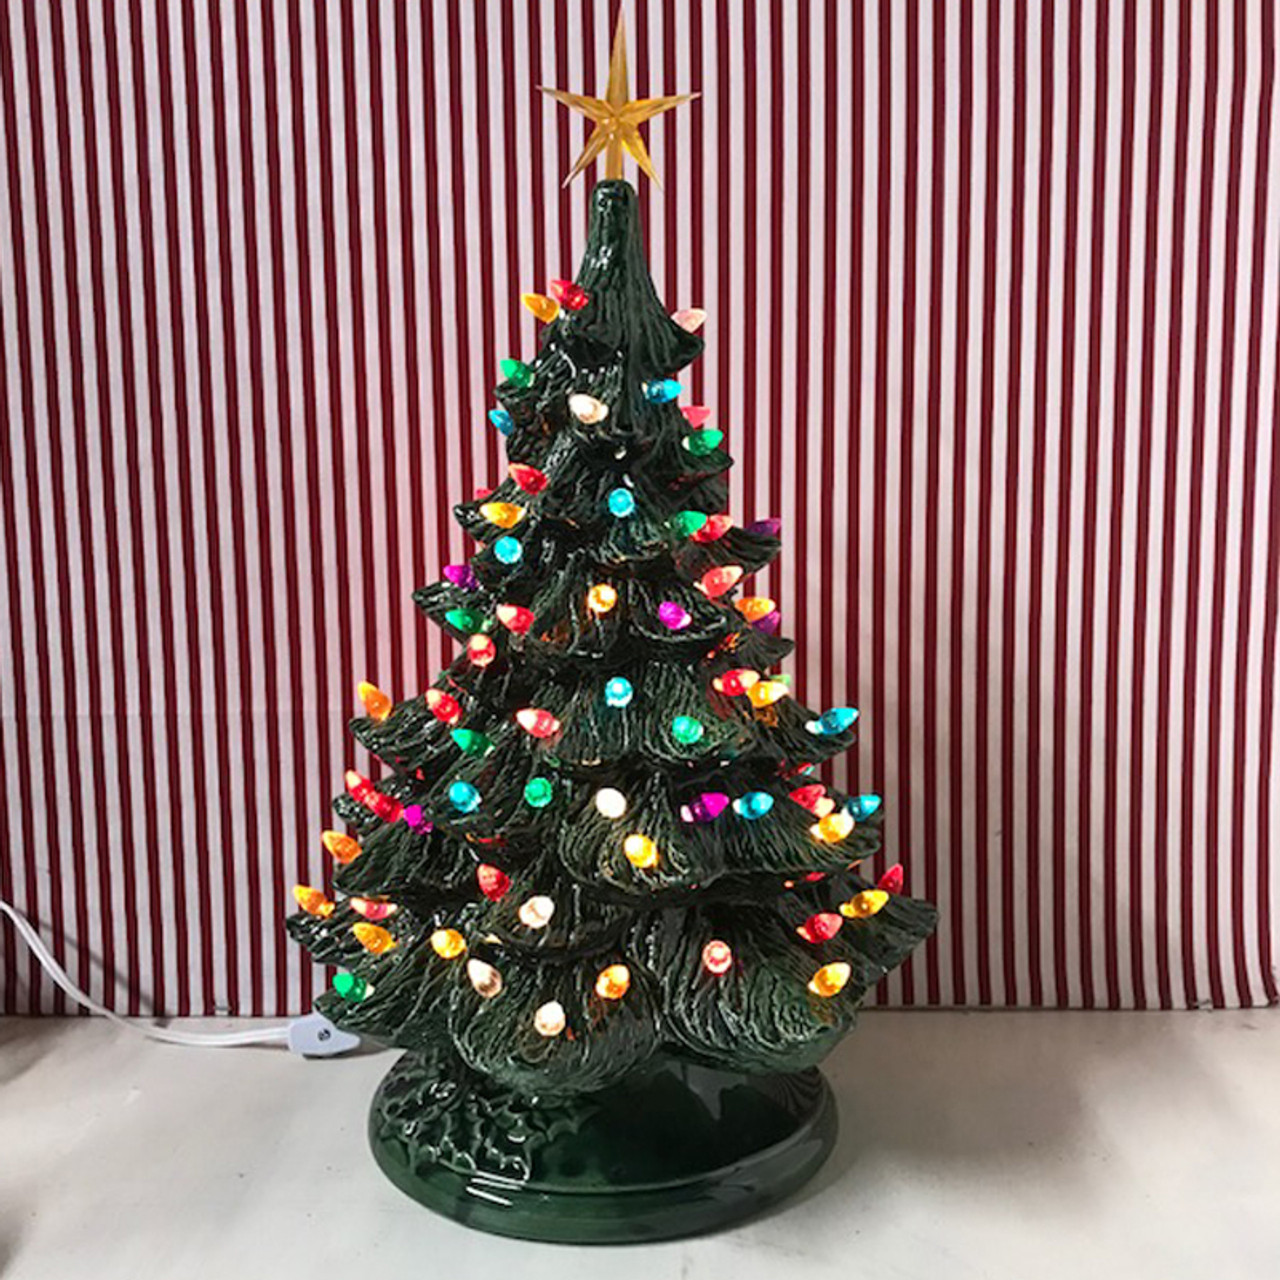 Ceramic Christmas Tree With Lights.Medium Lighted Green Ceramic Christmas Tree 17